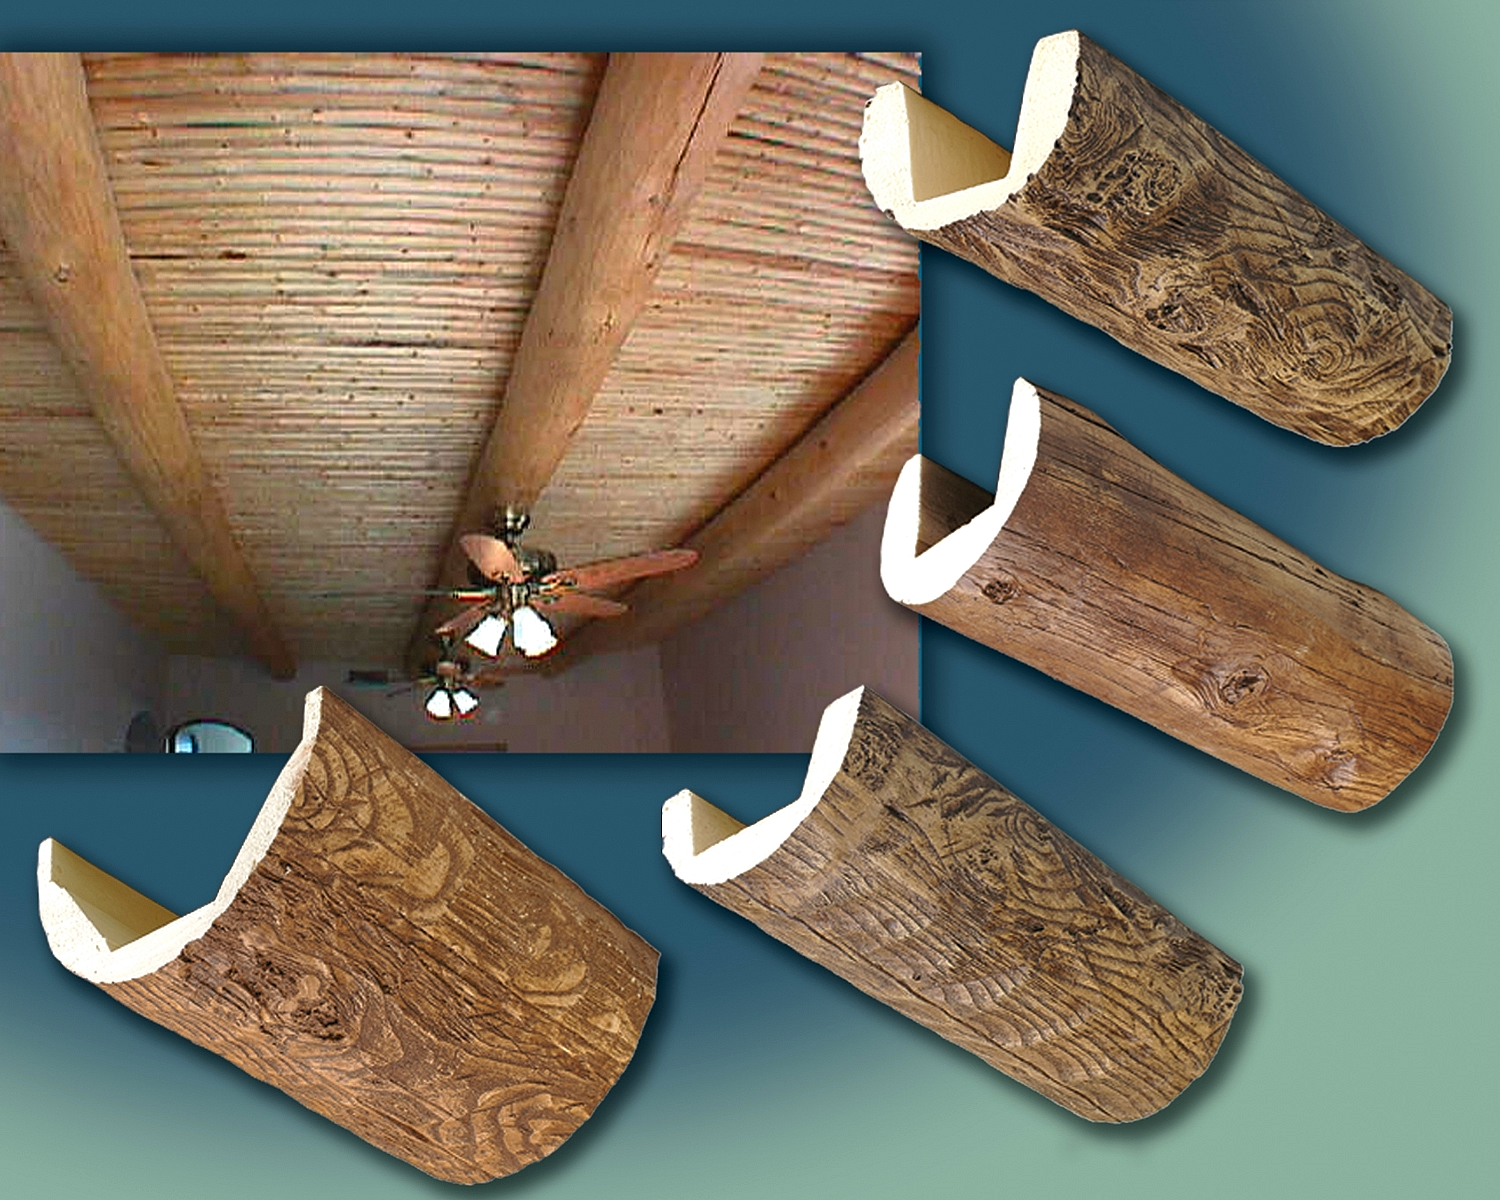 Outwater introduces its faux wood beams for Where to buy faux wood beams